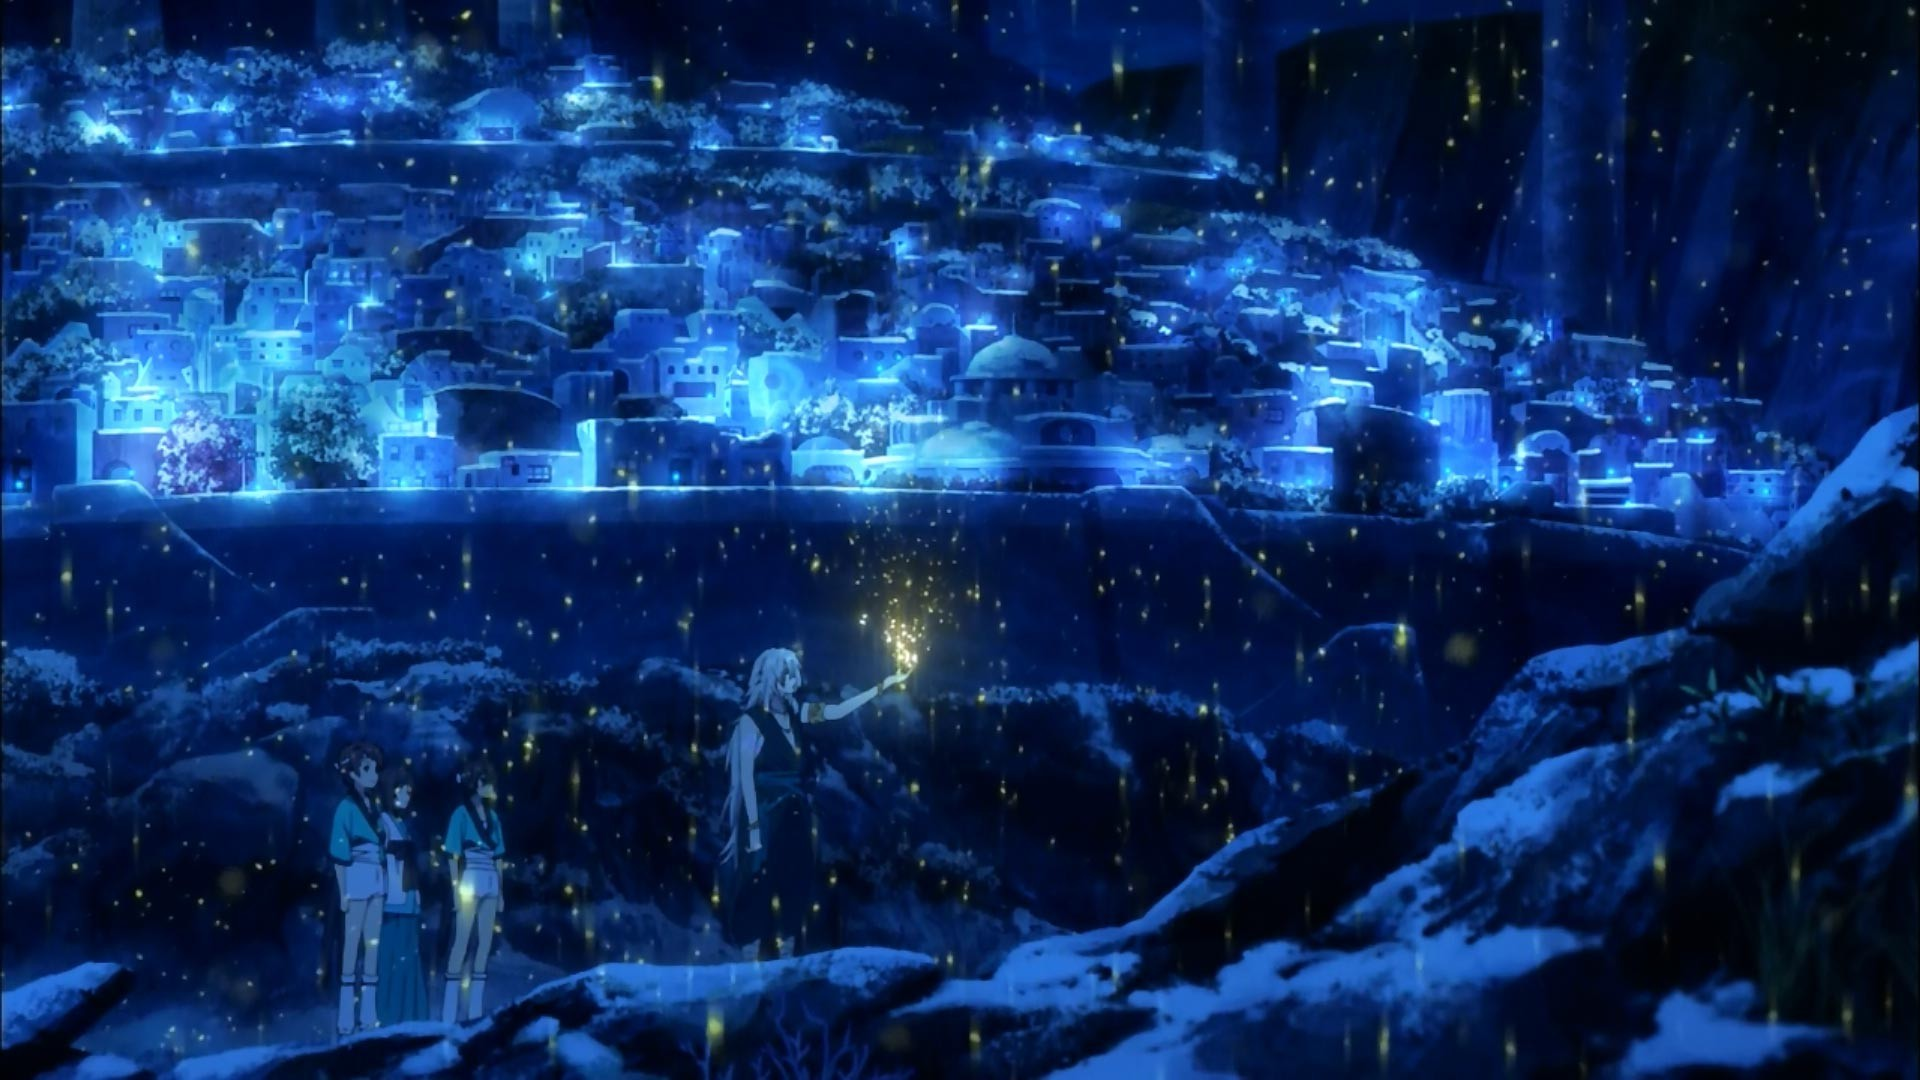 Pc Wallpaper 3d Love Nagi No Asukara Water City Sea Wallpapers Hd Desktop